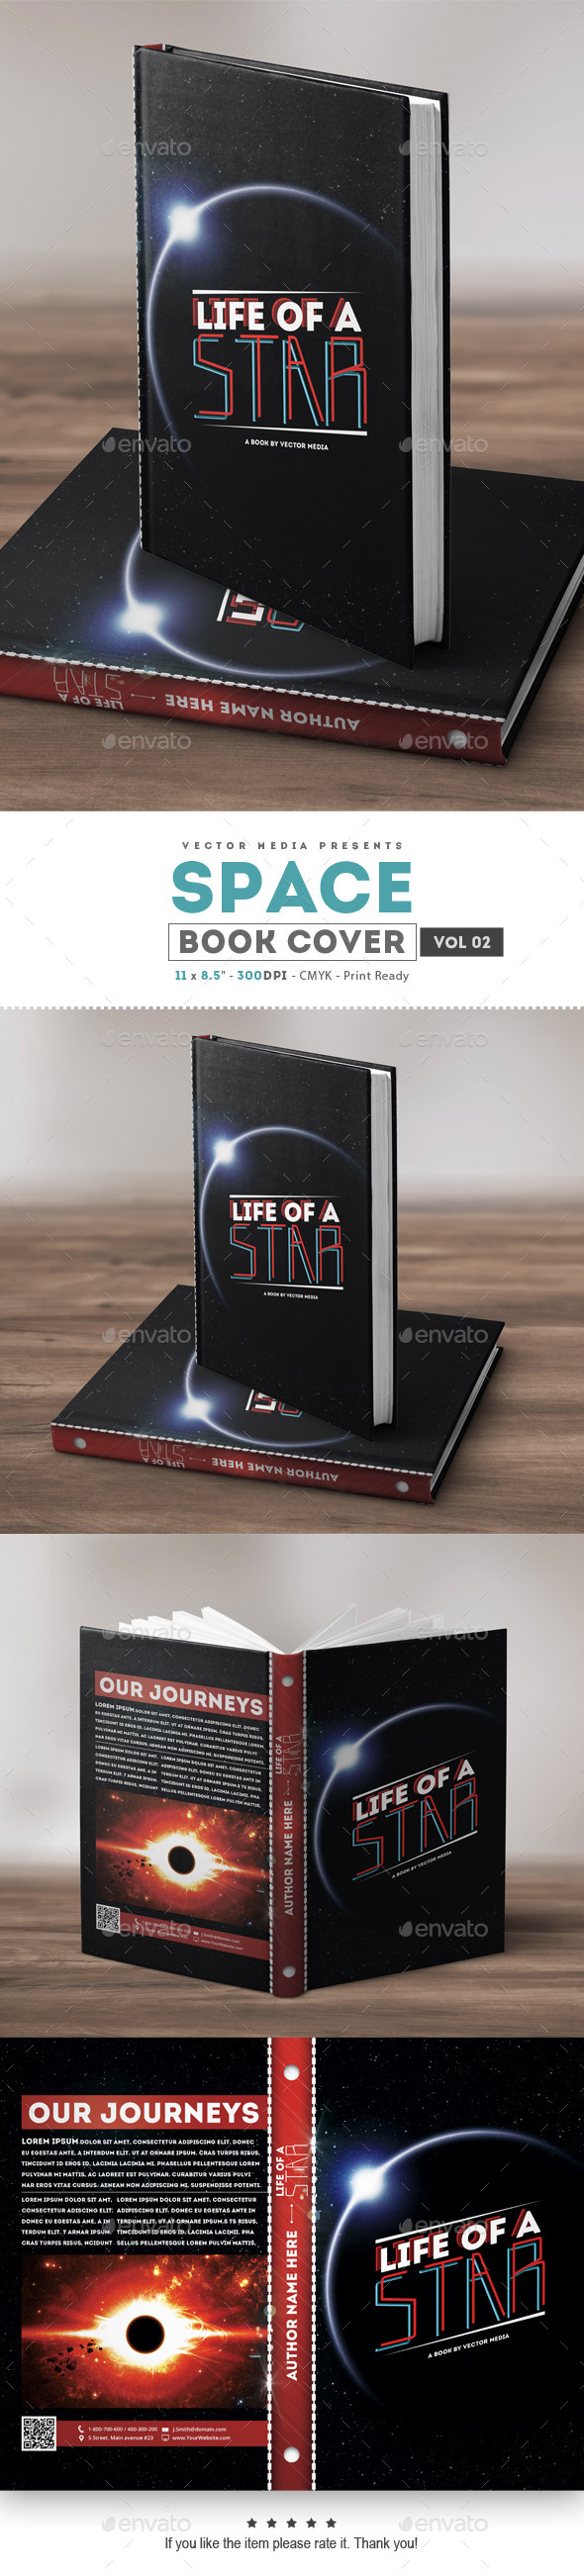 Space - Book Cover [Vol.2] - Miscellaneous Print Templates